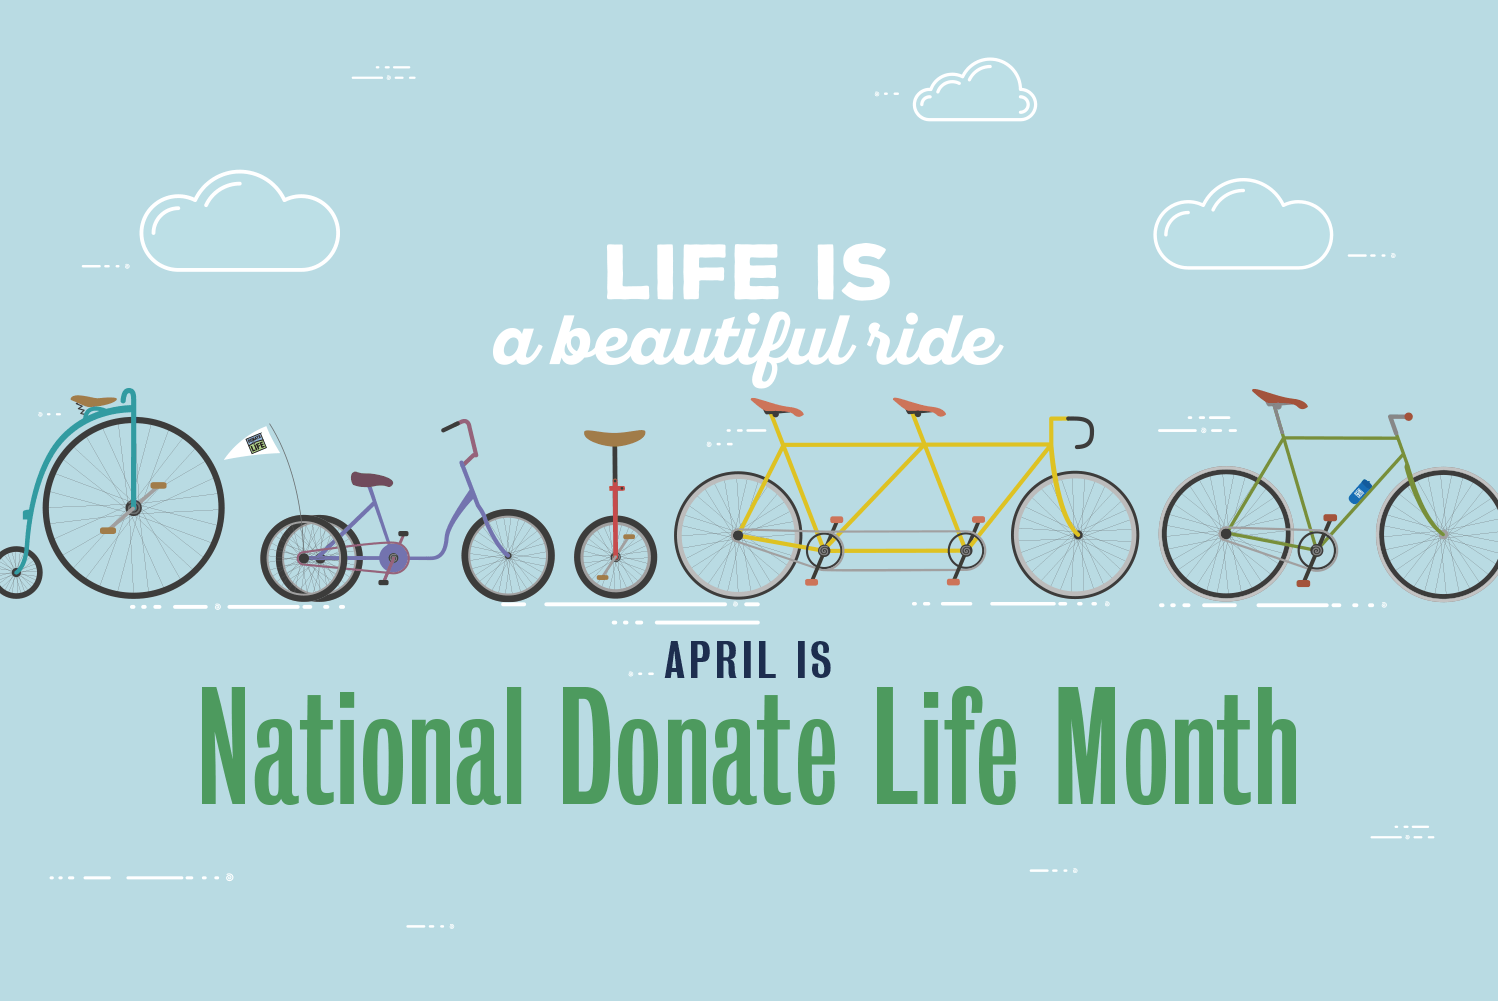 Life is a Beautiful Ride - National Donate Life Month Statistics